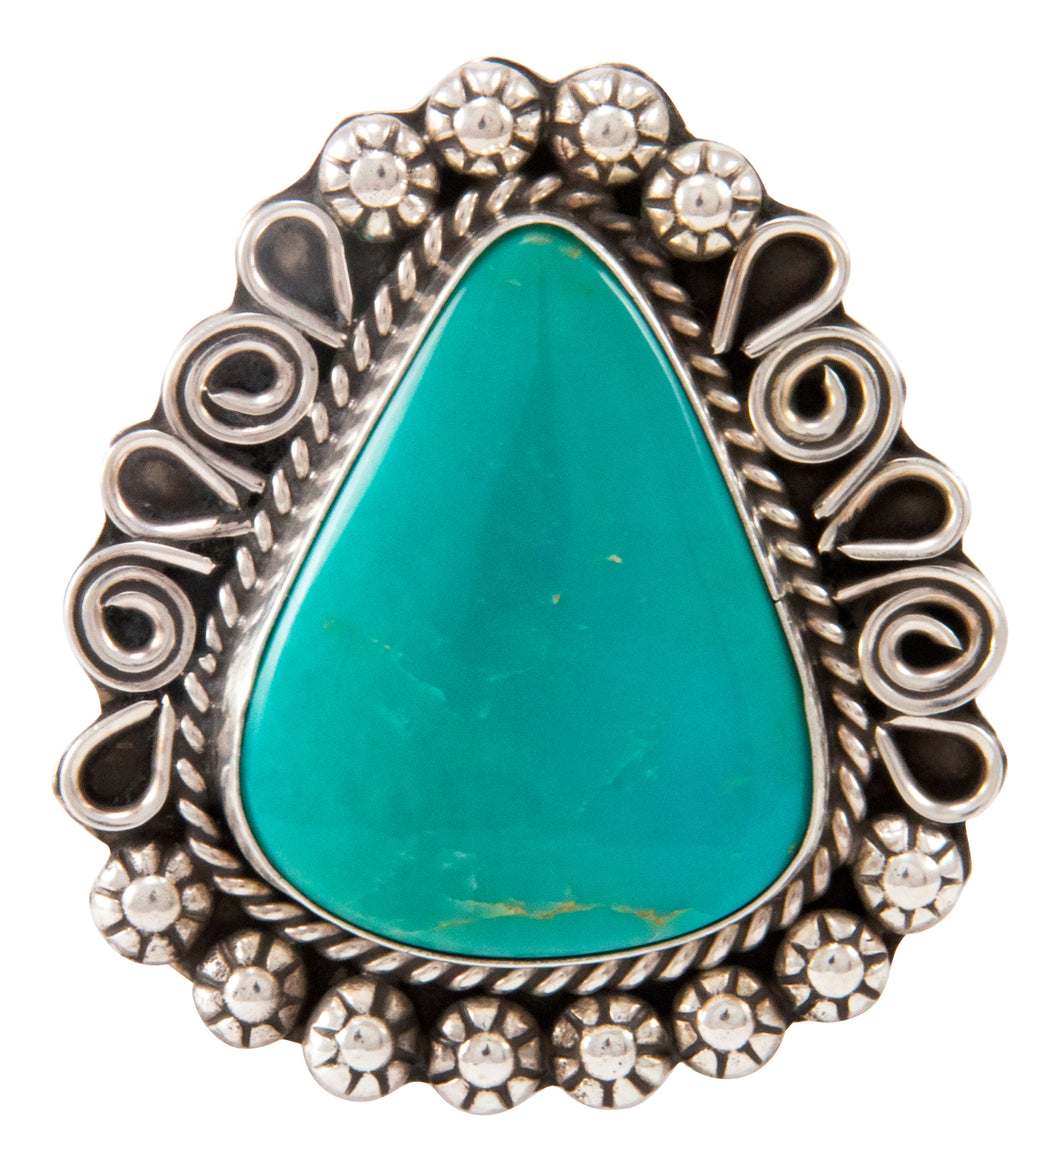 Navajo Native American Kingman Turquoise Ring Size 8 3/4 by Lee SKU233002